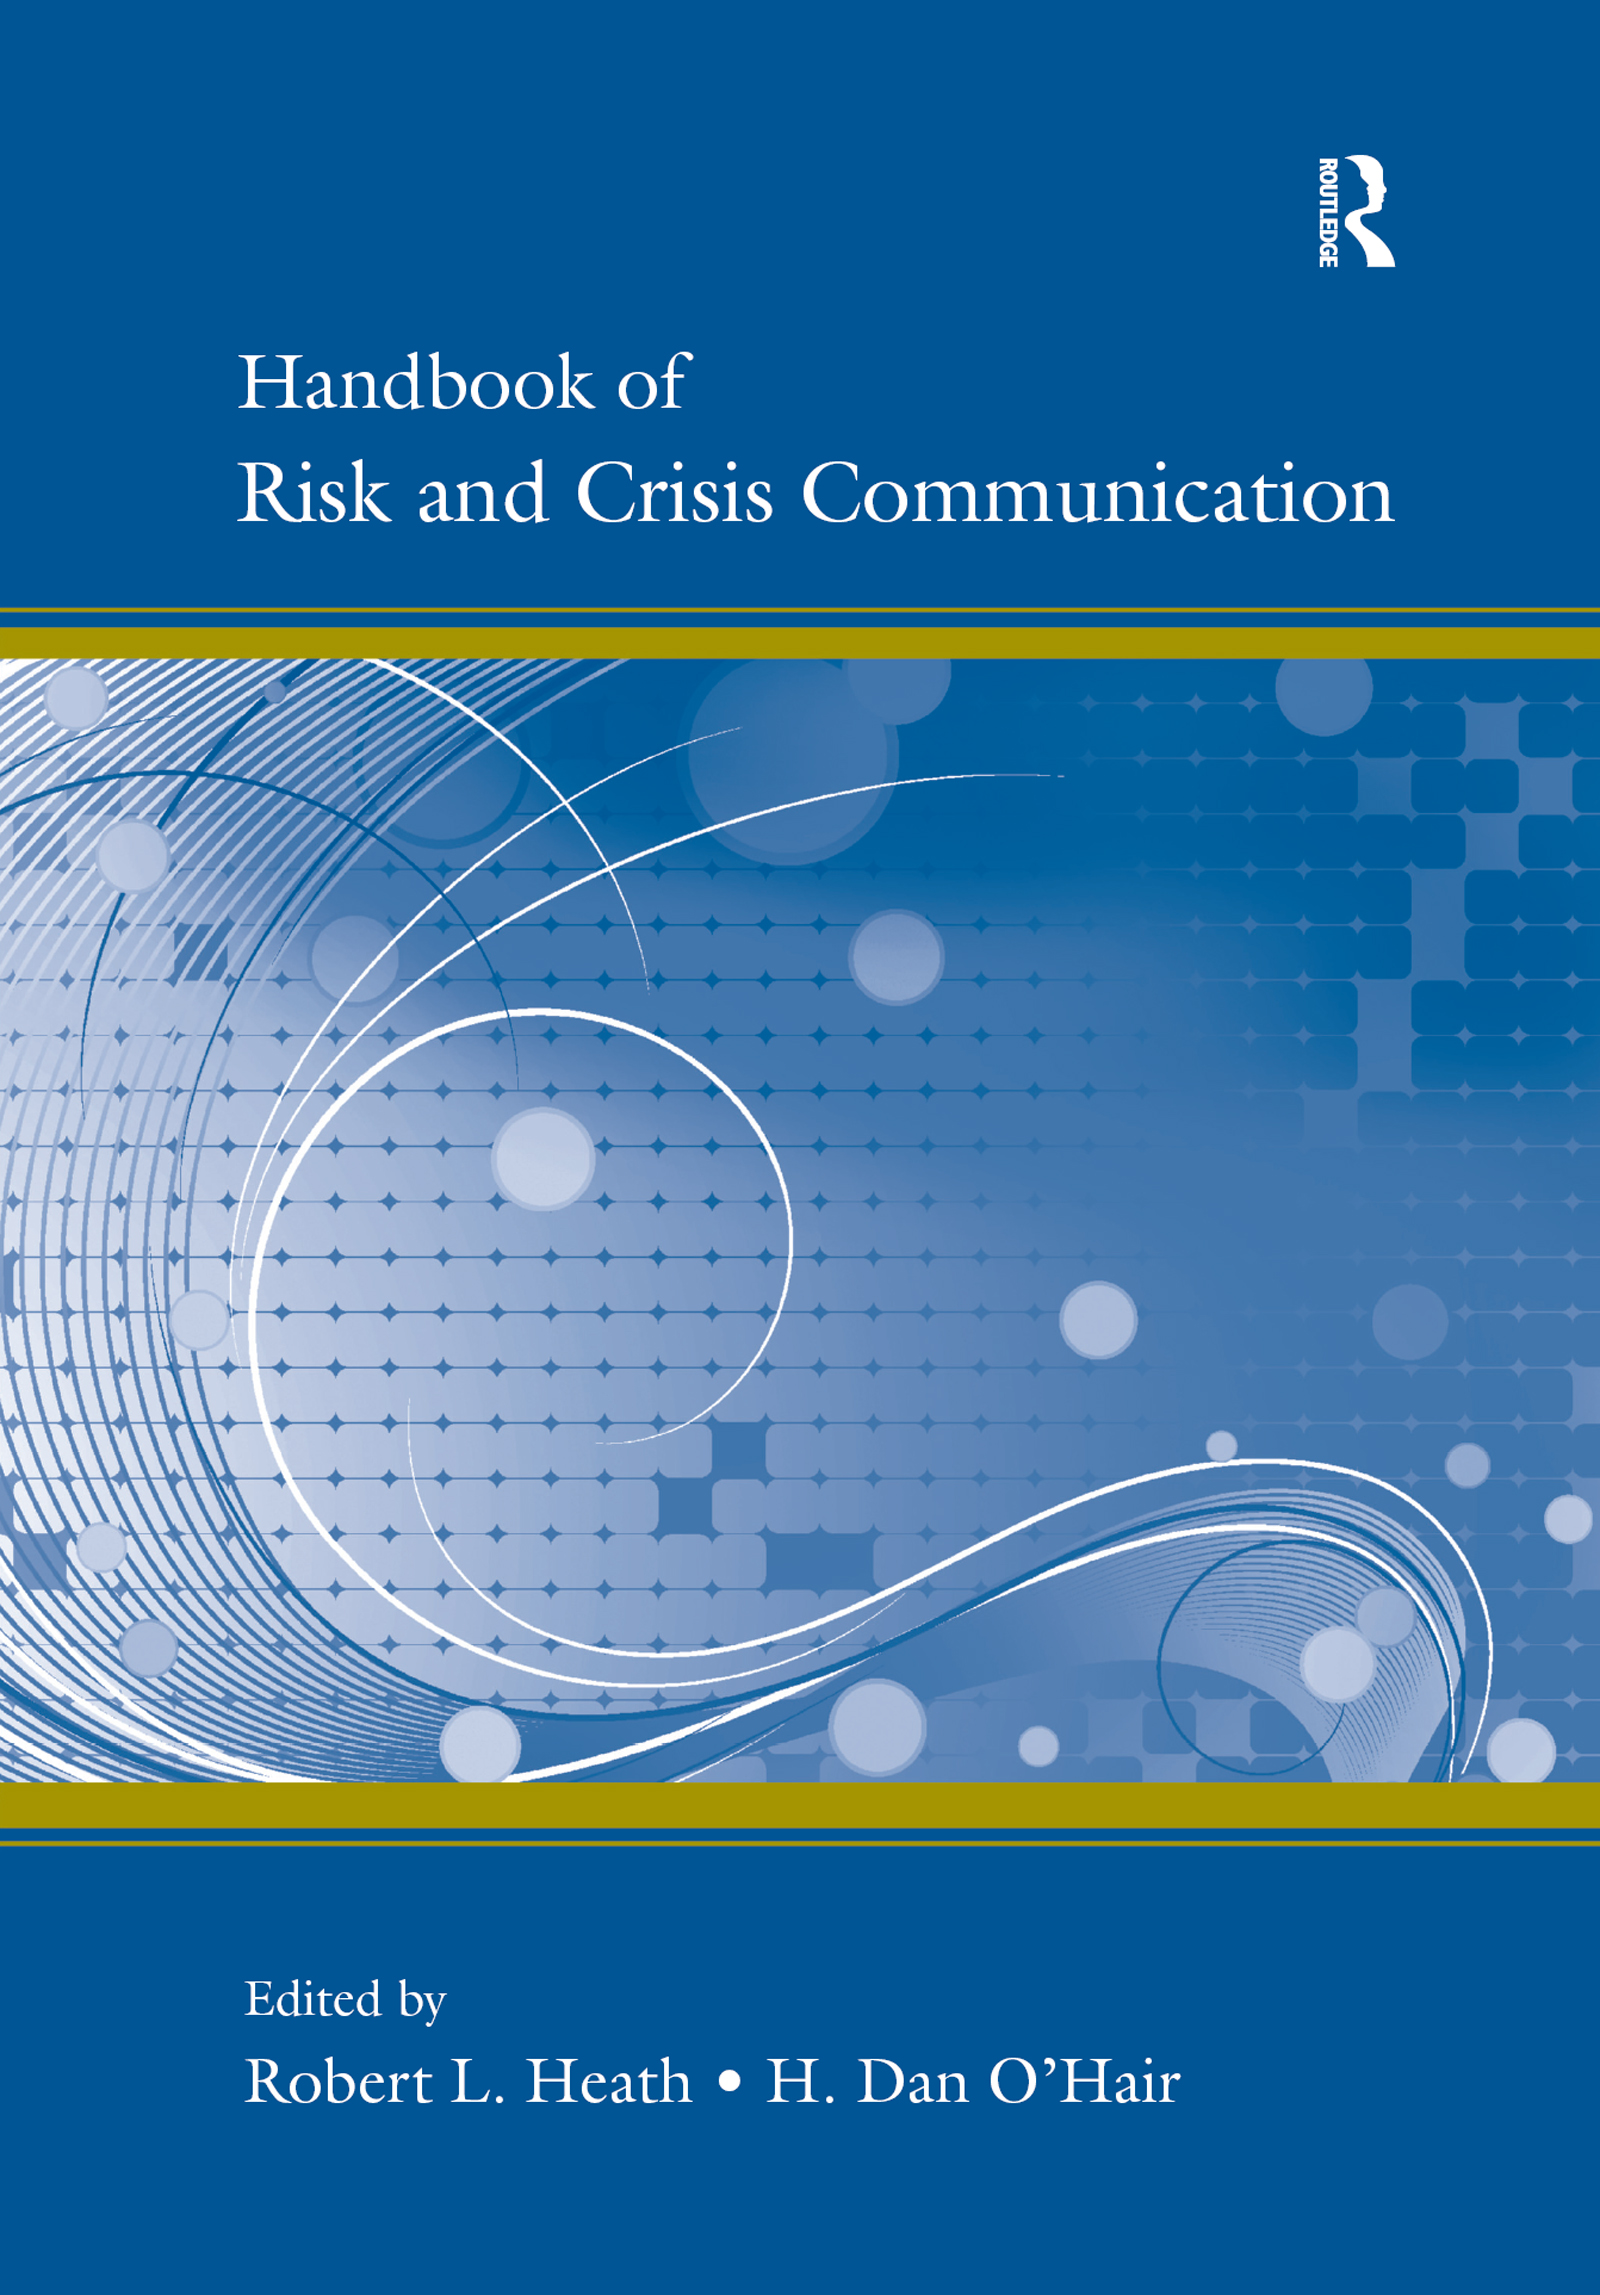 Risk Communication: Insights and Requirements for Designing Successful Communication Programs on Health and Environmental Hazards